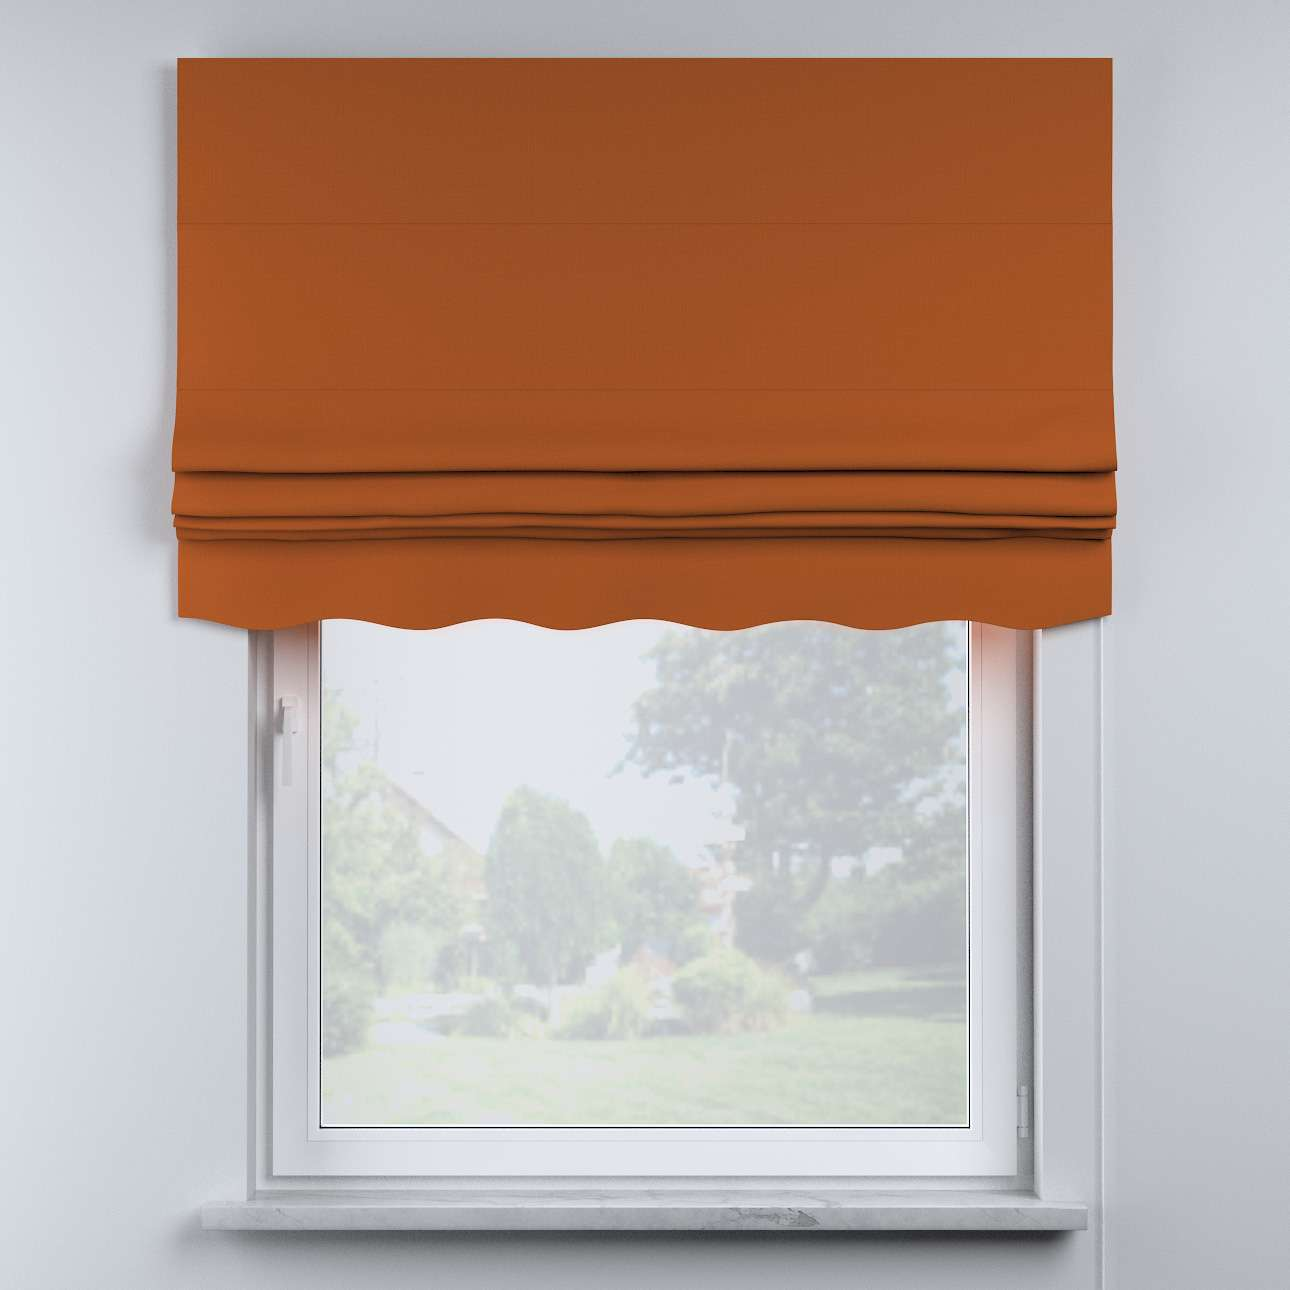 Mela roman blind in collection Cotton Story, fabric: 702-42